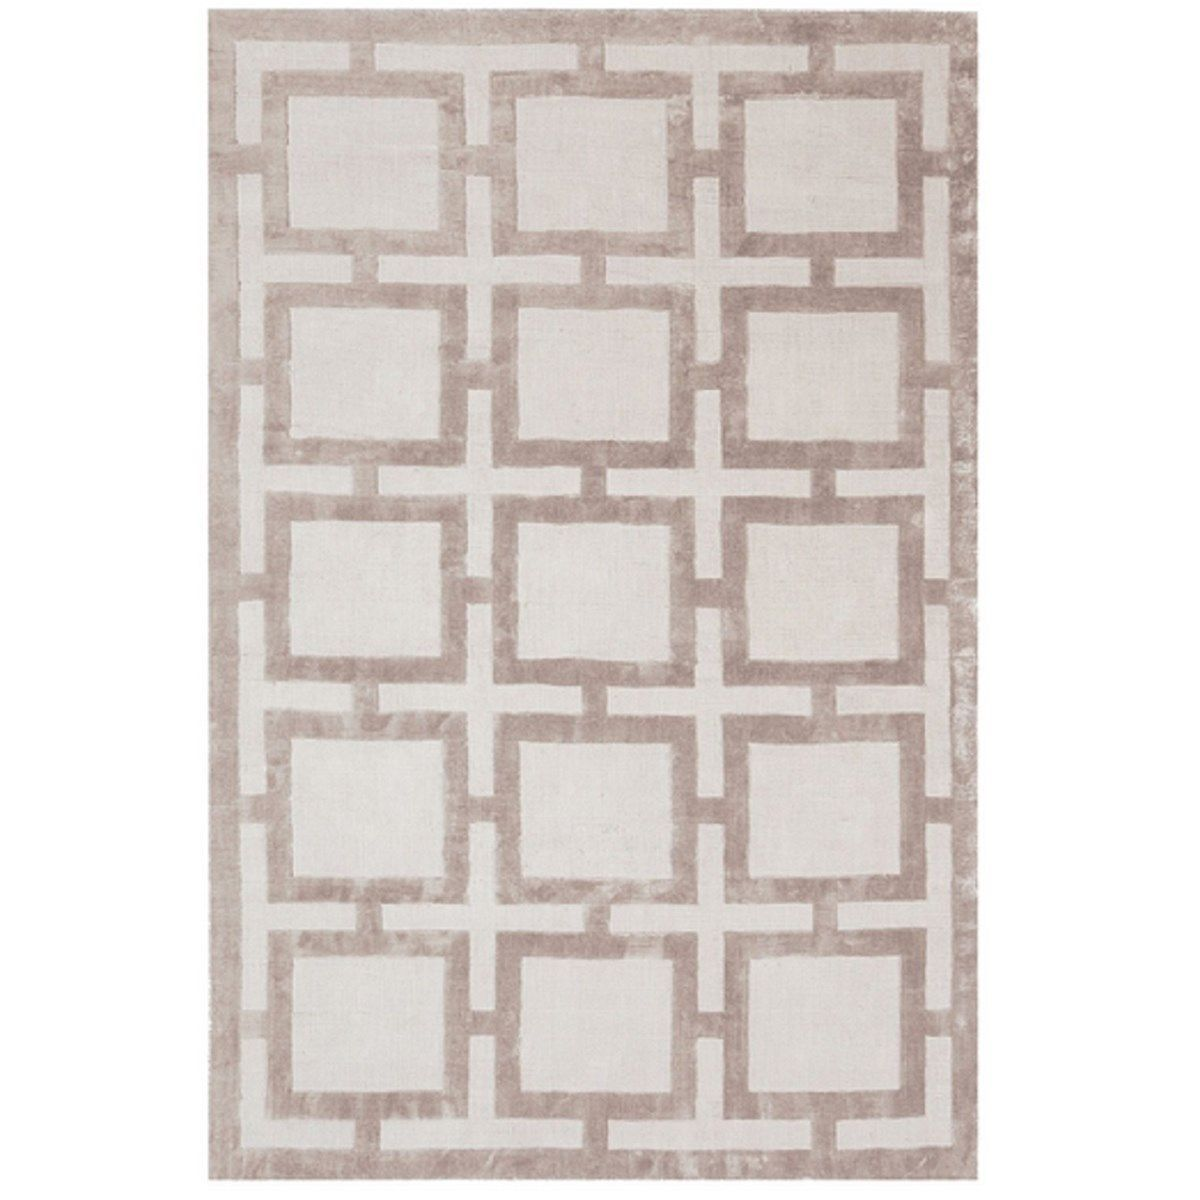 Tapis Pure Viscose Luxe Tisse Main Note Taille 120x170 Cm 175